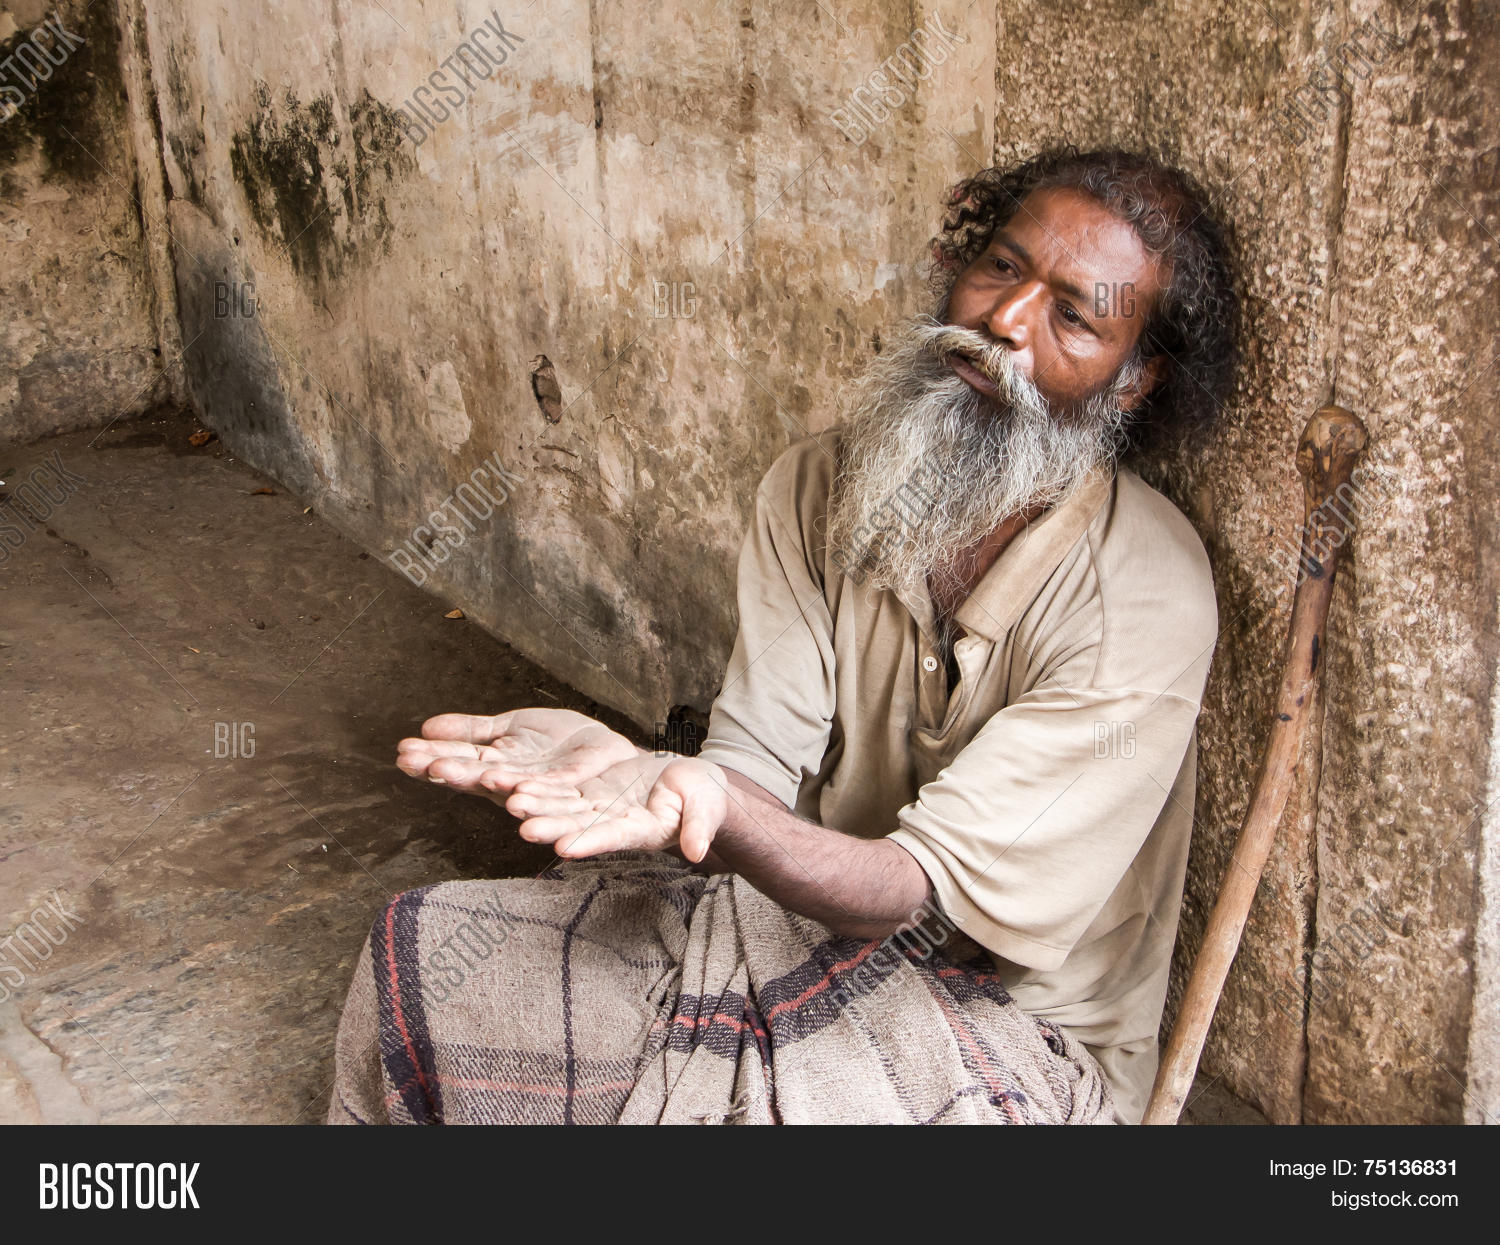 man begging Old